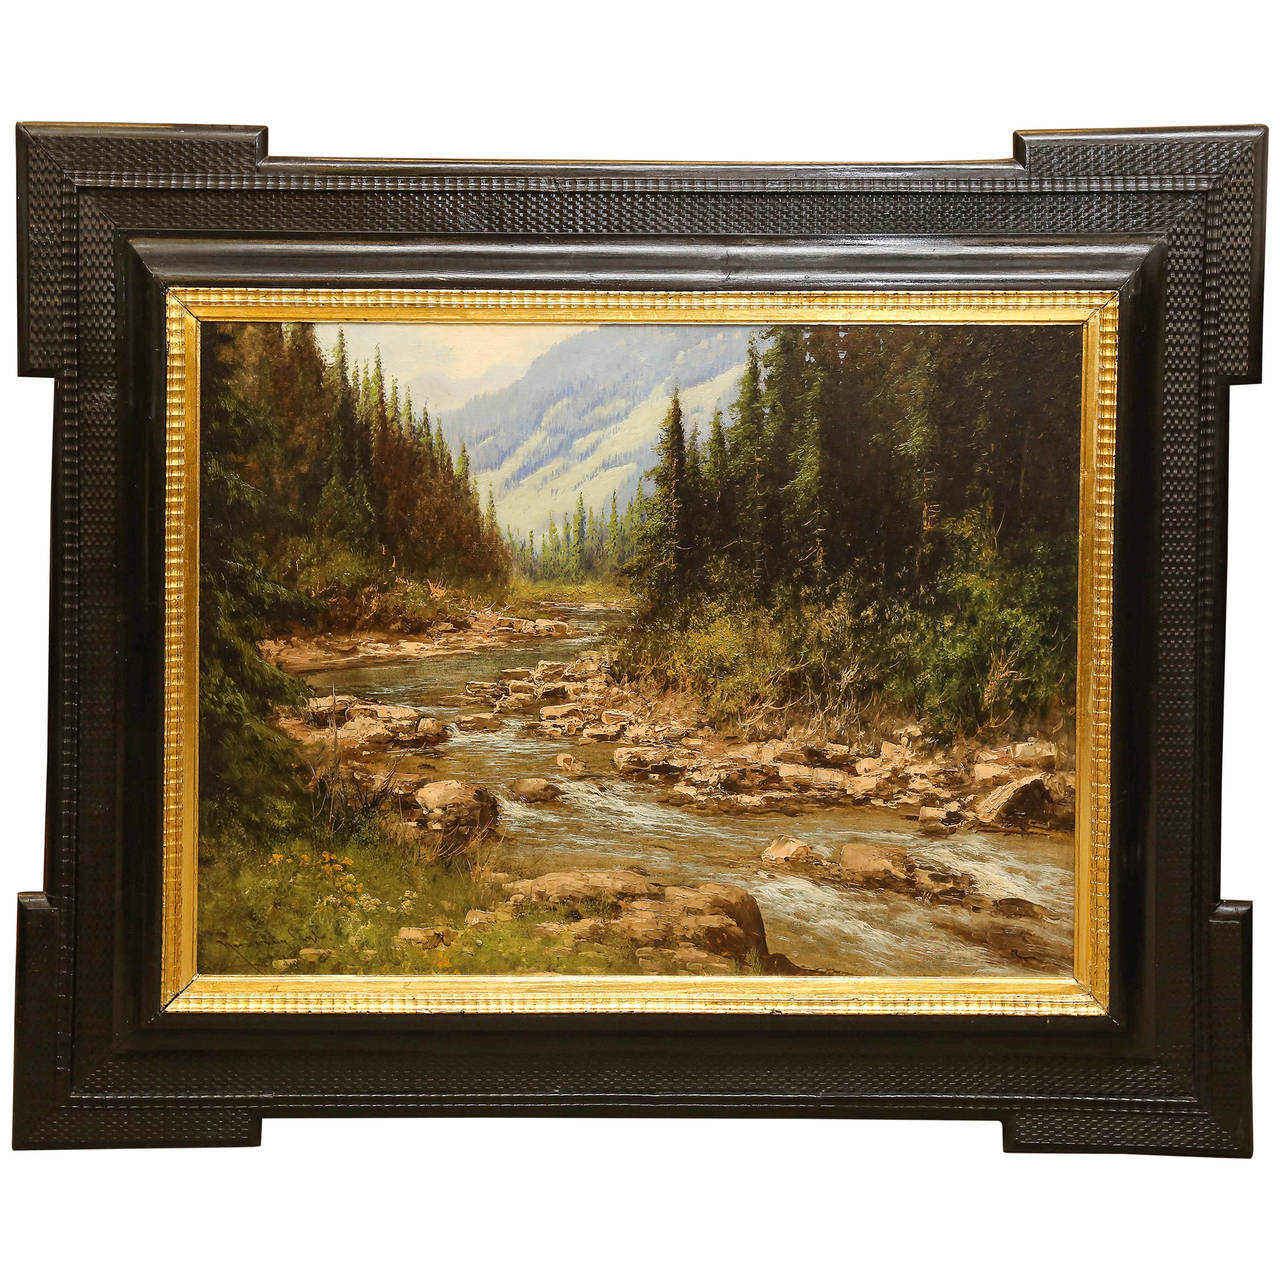 "Laszlo Neogrady Painting, ""Endless Mountain Landscape with a Creek"""